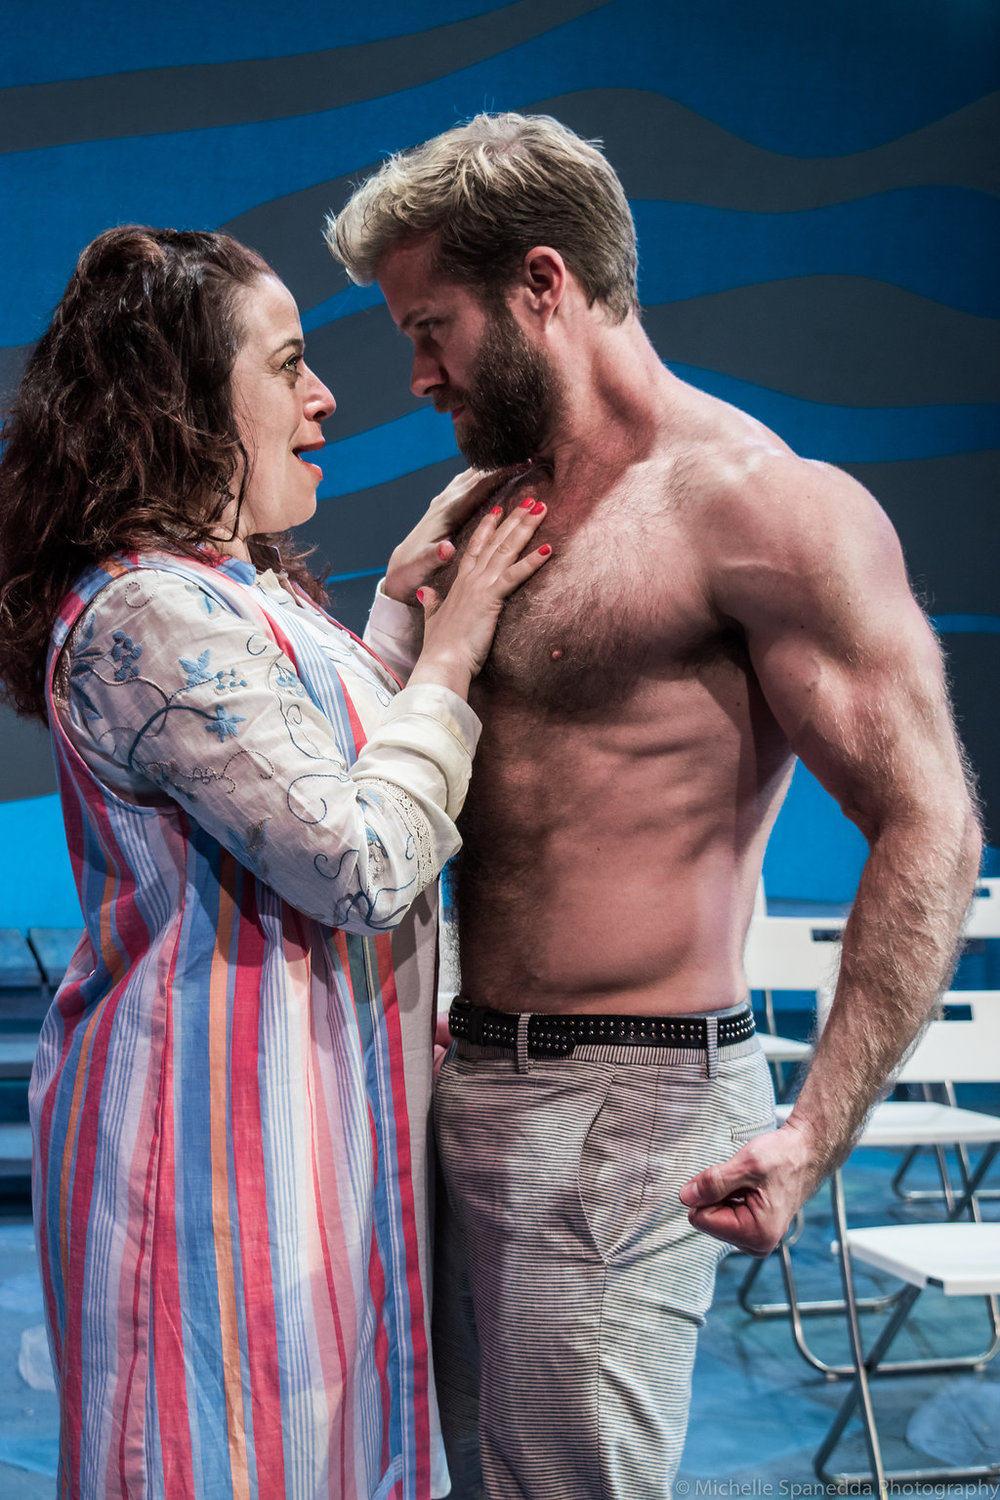 """Sheri Sanders as """"Rosie"""" and Craig Ramsay as """"Bill Austin"""" in ACT of Connecticut's """"Mamma Mia!"""", Photo Credit:Michelle Spanedda Photography"""